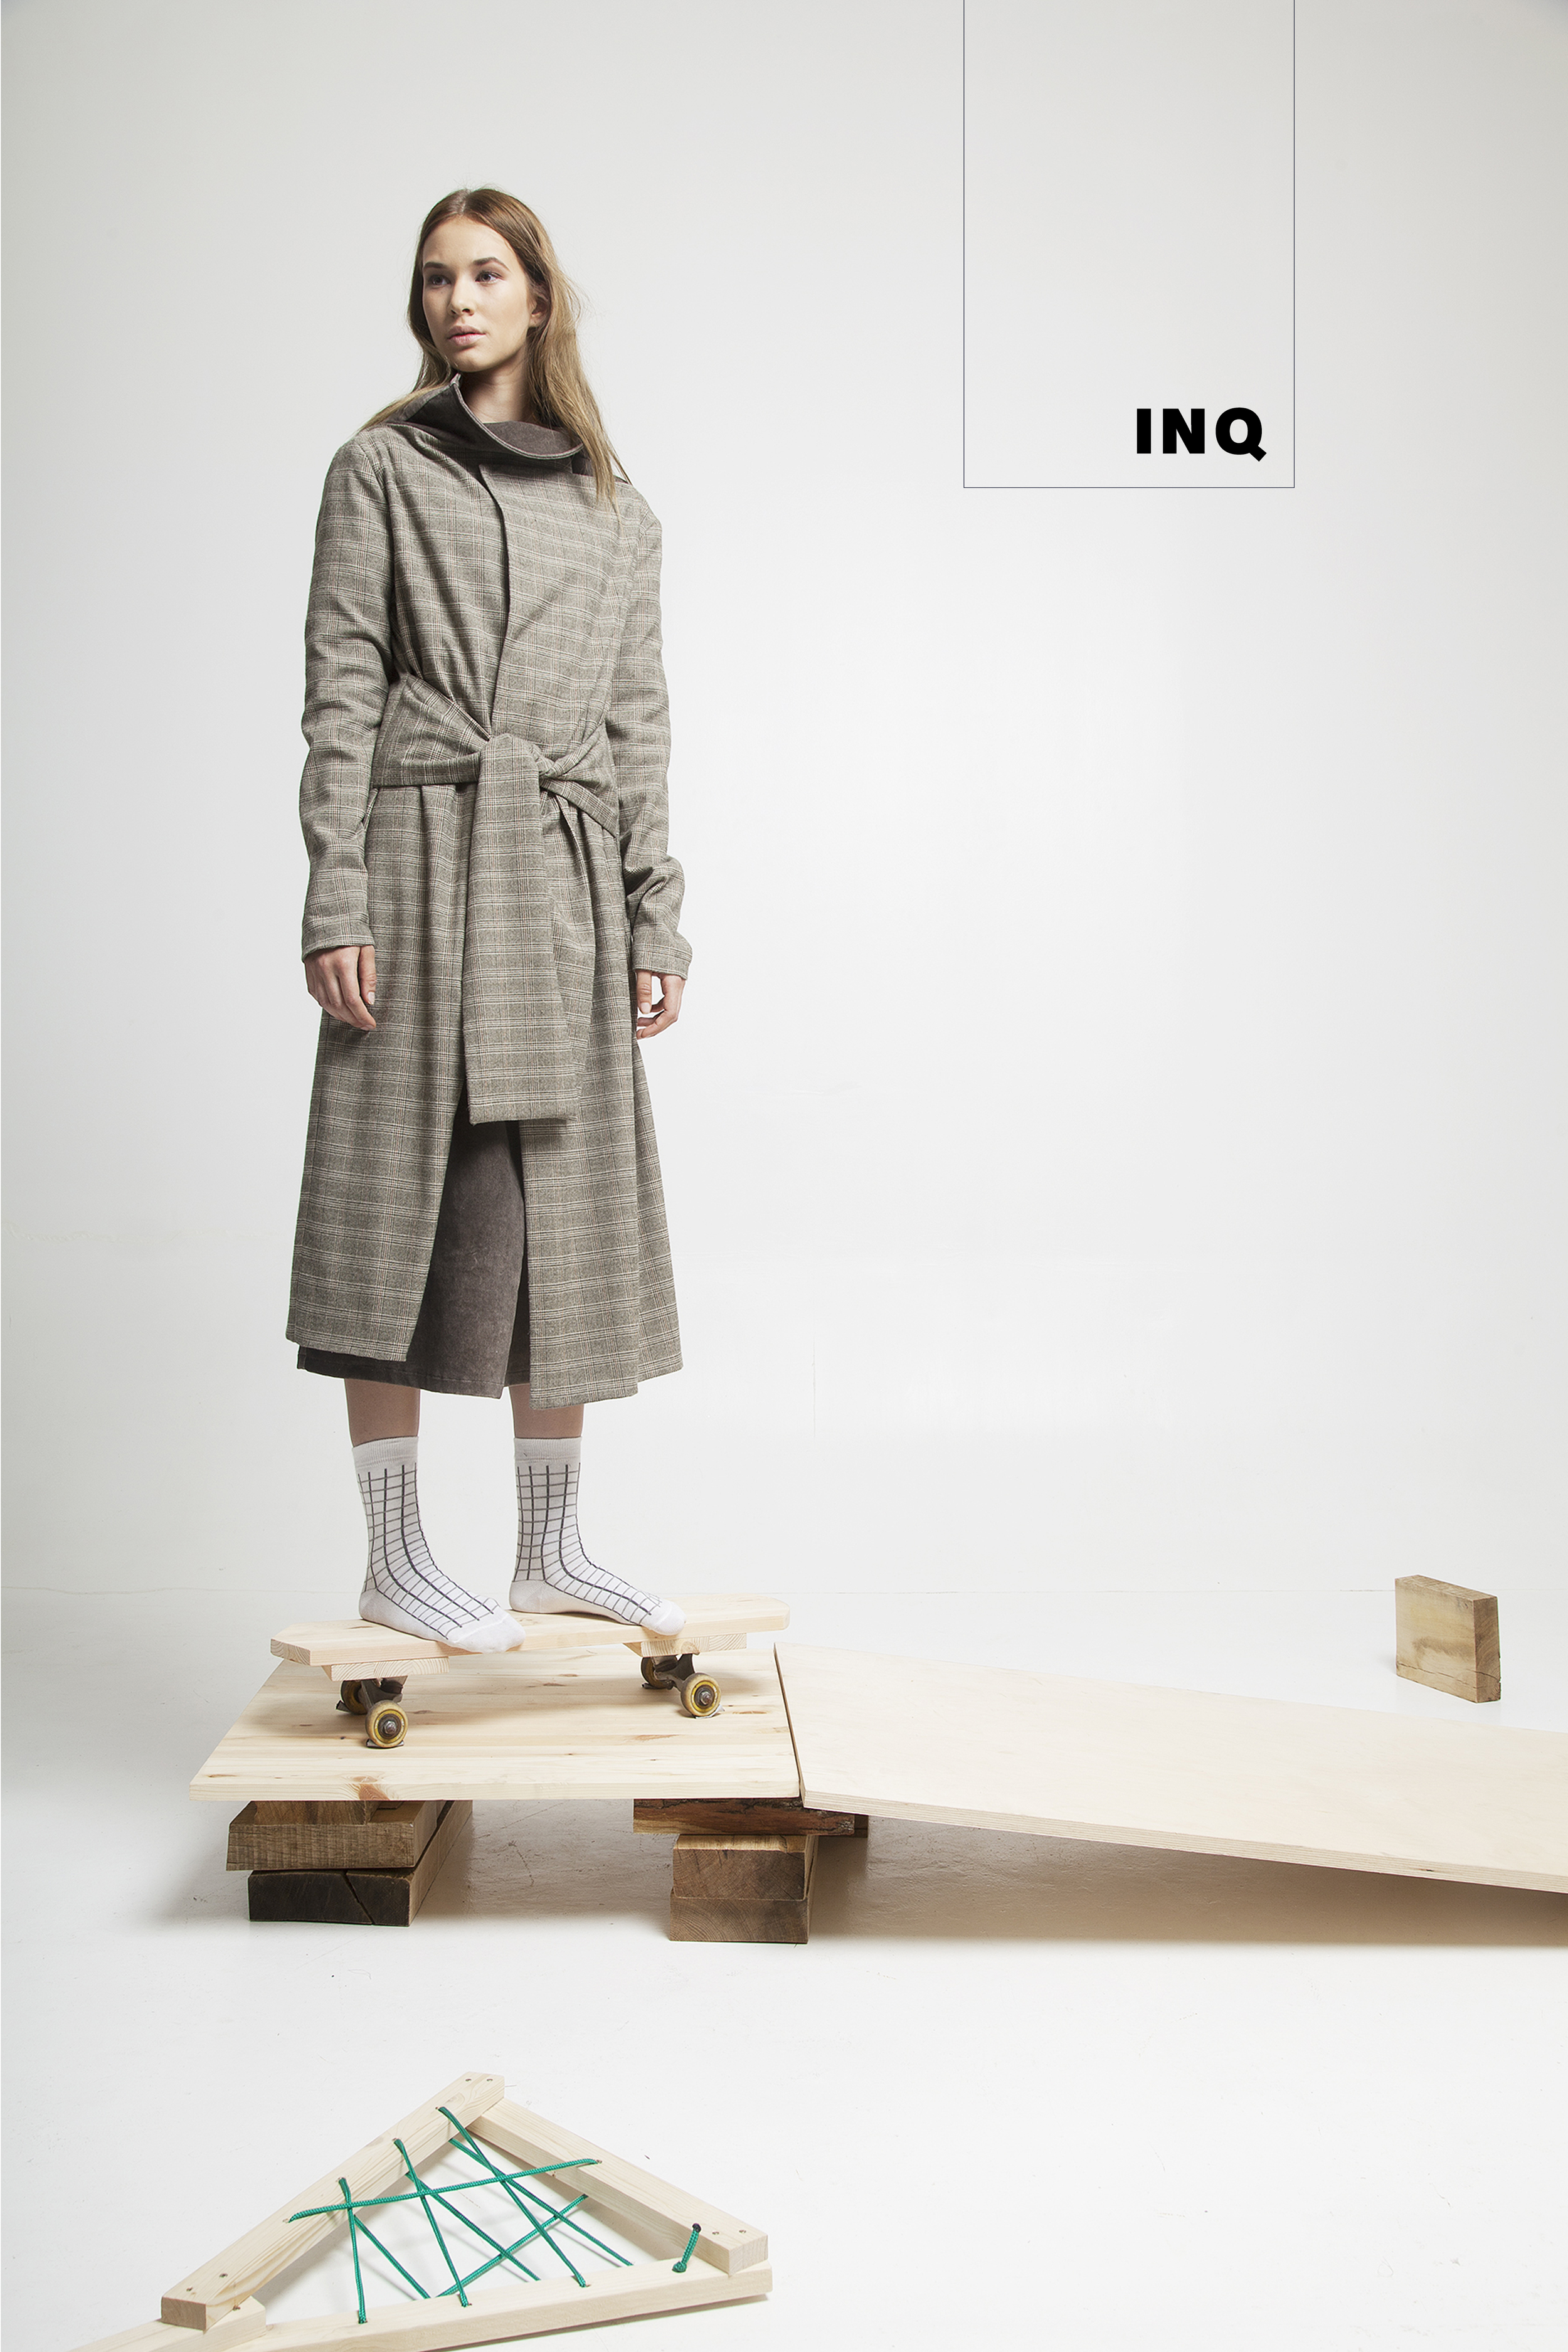 INQ concept_AW14_womenclothing_model Laura_photo by Mate Moro_hair and makeup by HAVE Salon_3.jpg